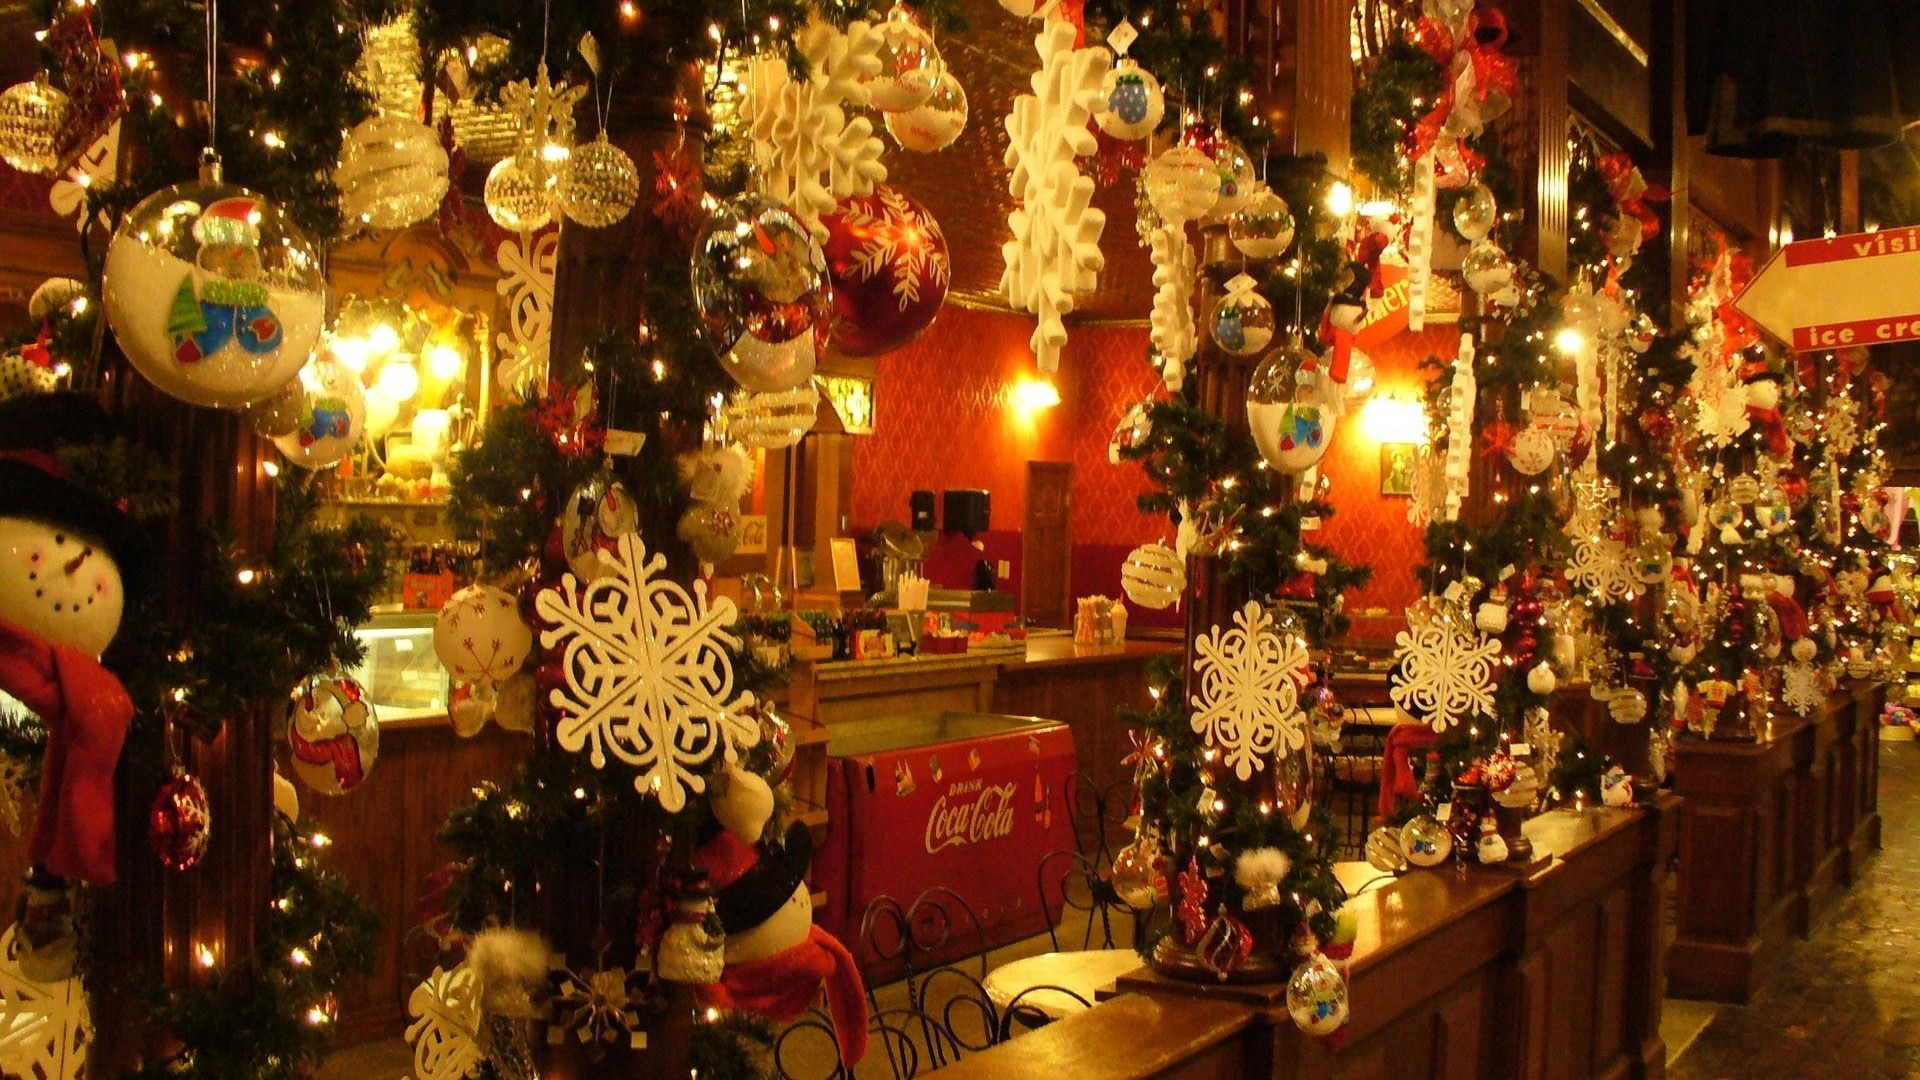 1920x1080  Wallpaper christmas ornaments, snowflakes, cafes, needles,  christmas, holiday